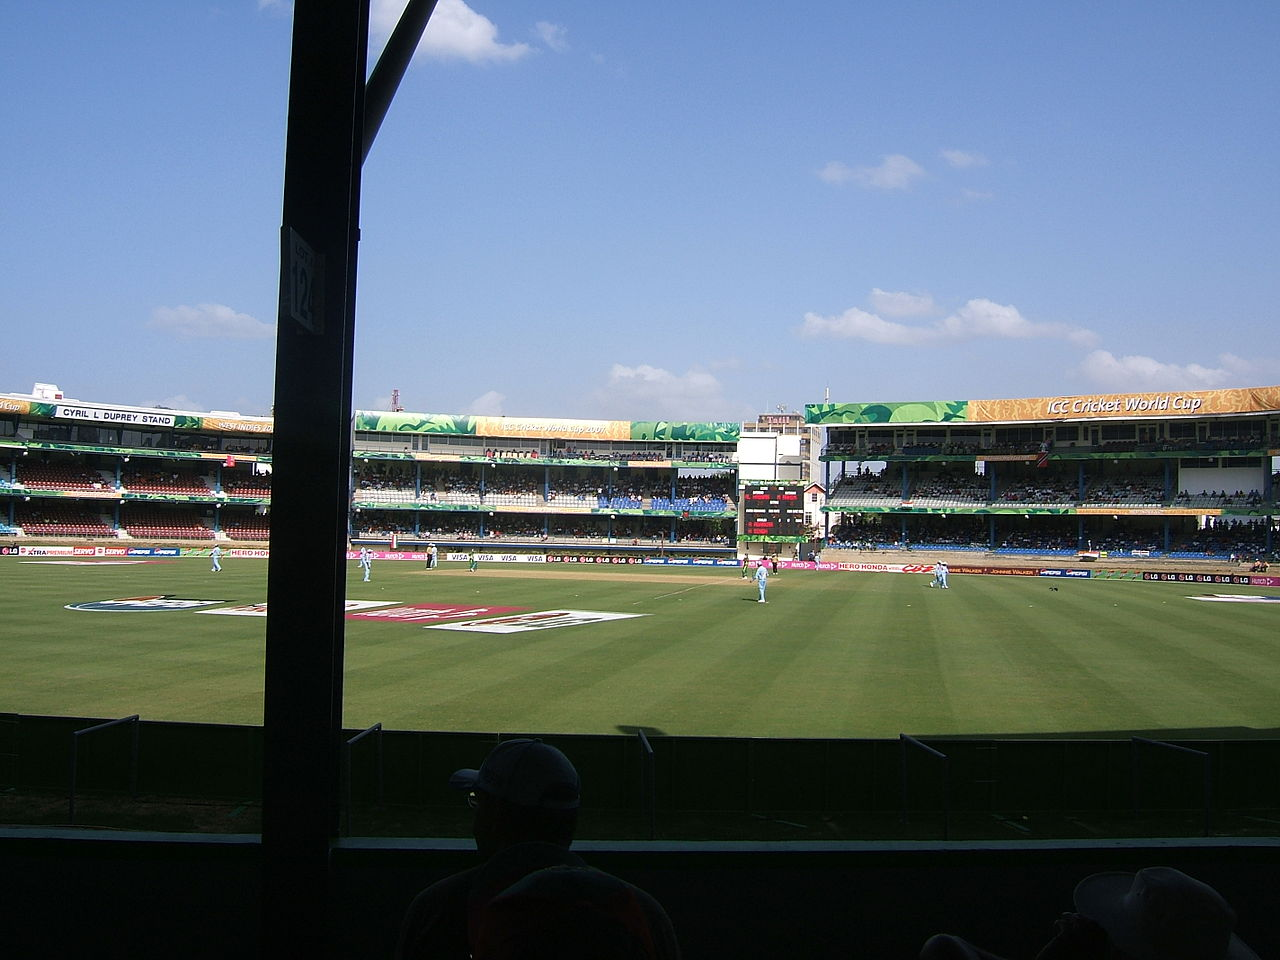 File:Cricket t&t 2007cwc ind vs ban.jpg - Wikimedia Commons